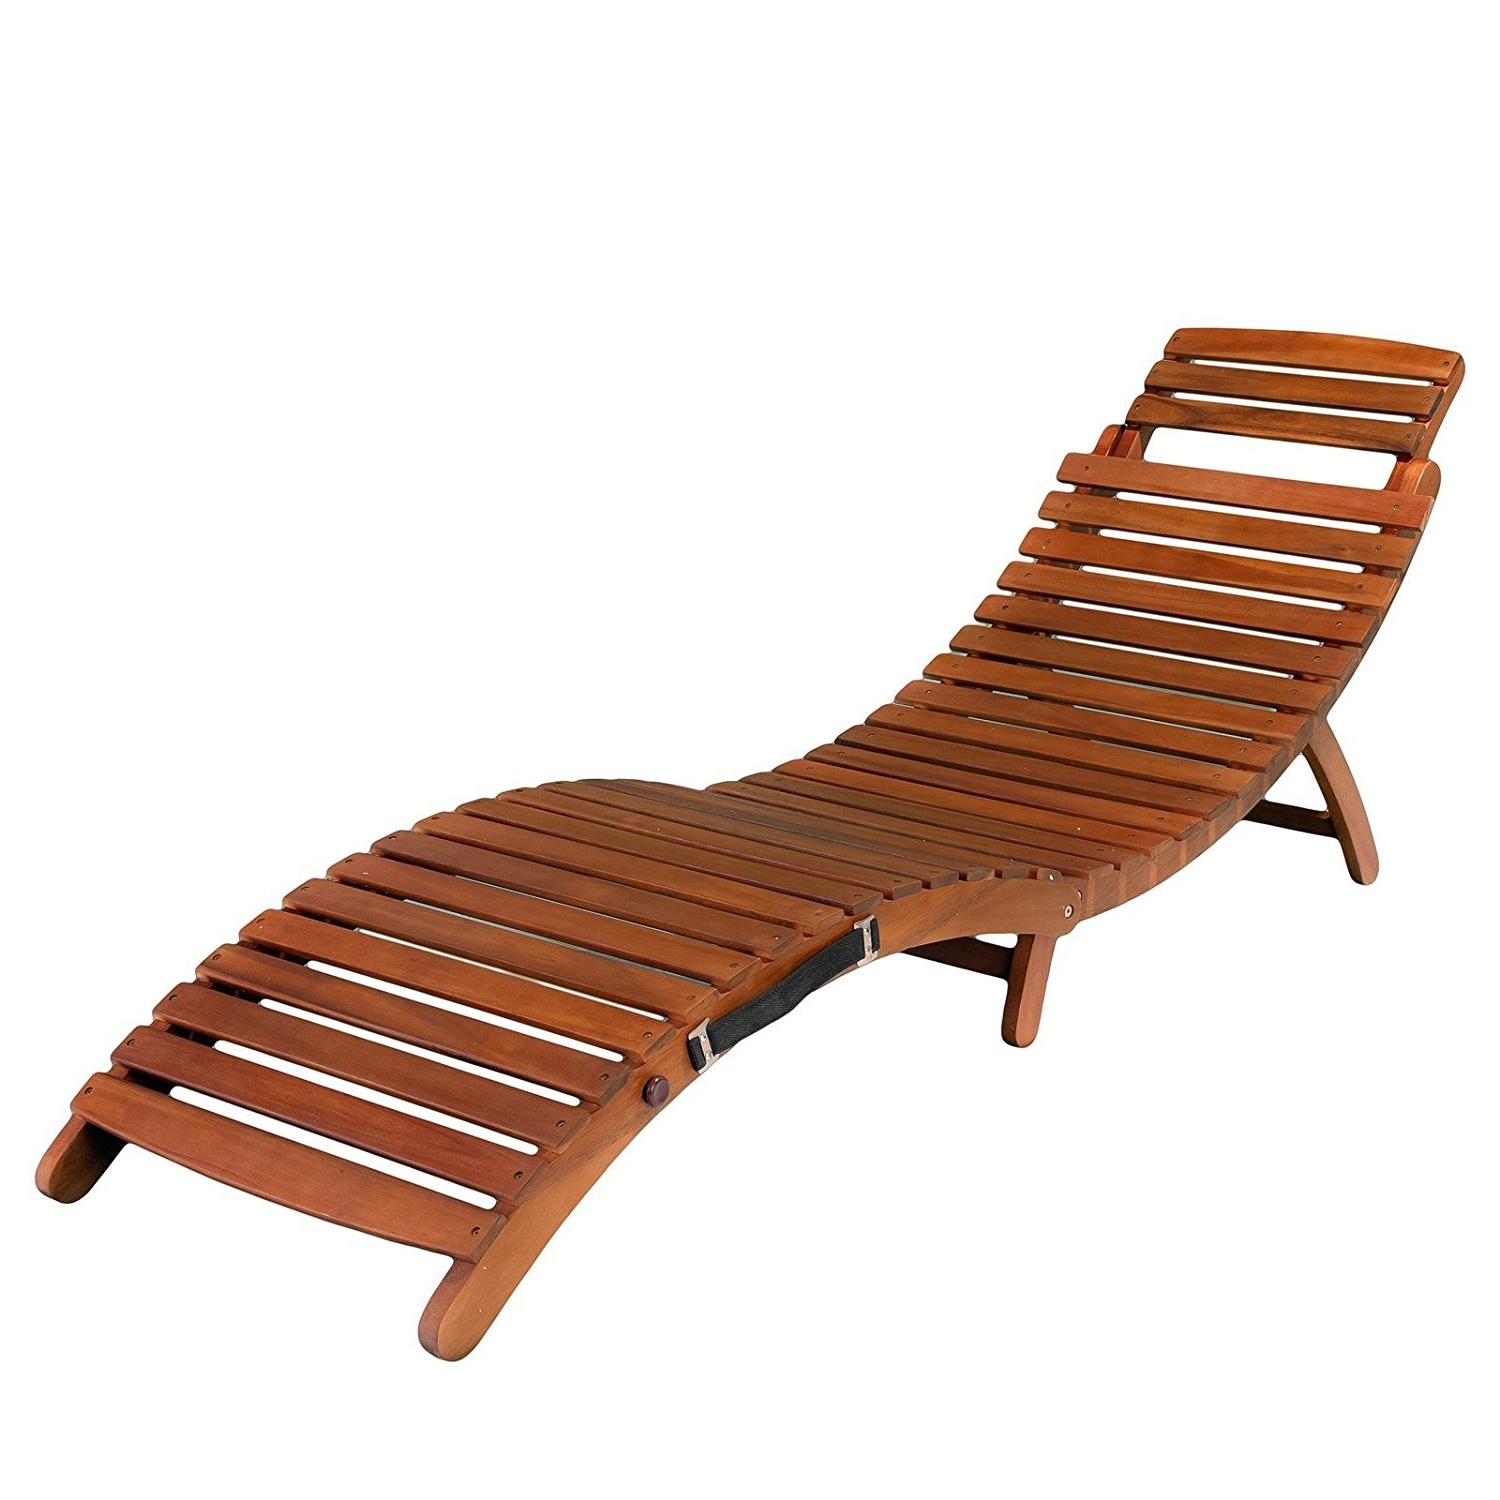 Outdoor : Indoor Lounge Chair Walmart Chaise Lounge Outdoor Ikea Pertaining To Popular Ikea Outdoor Chaise Lounge Chairs (View 12 of 15)